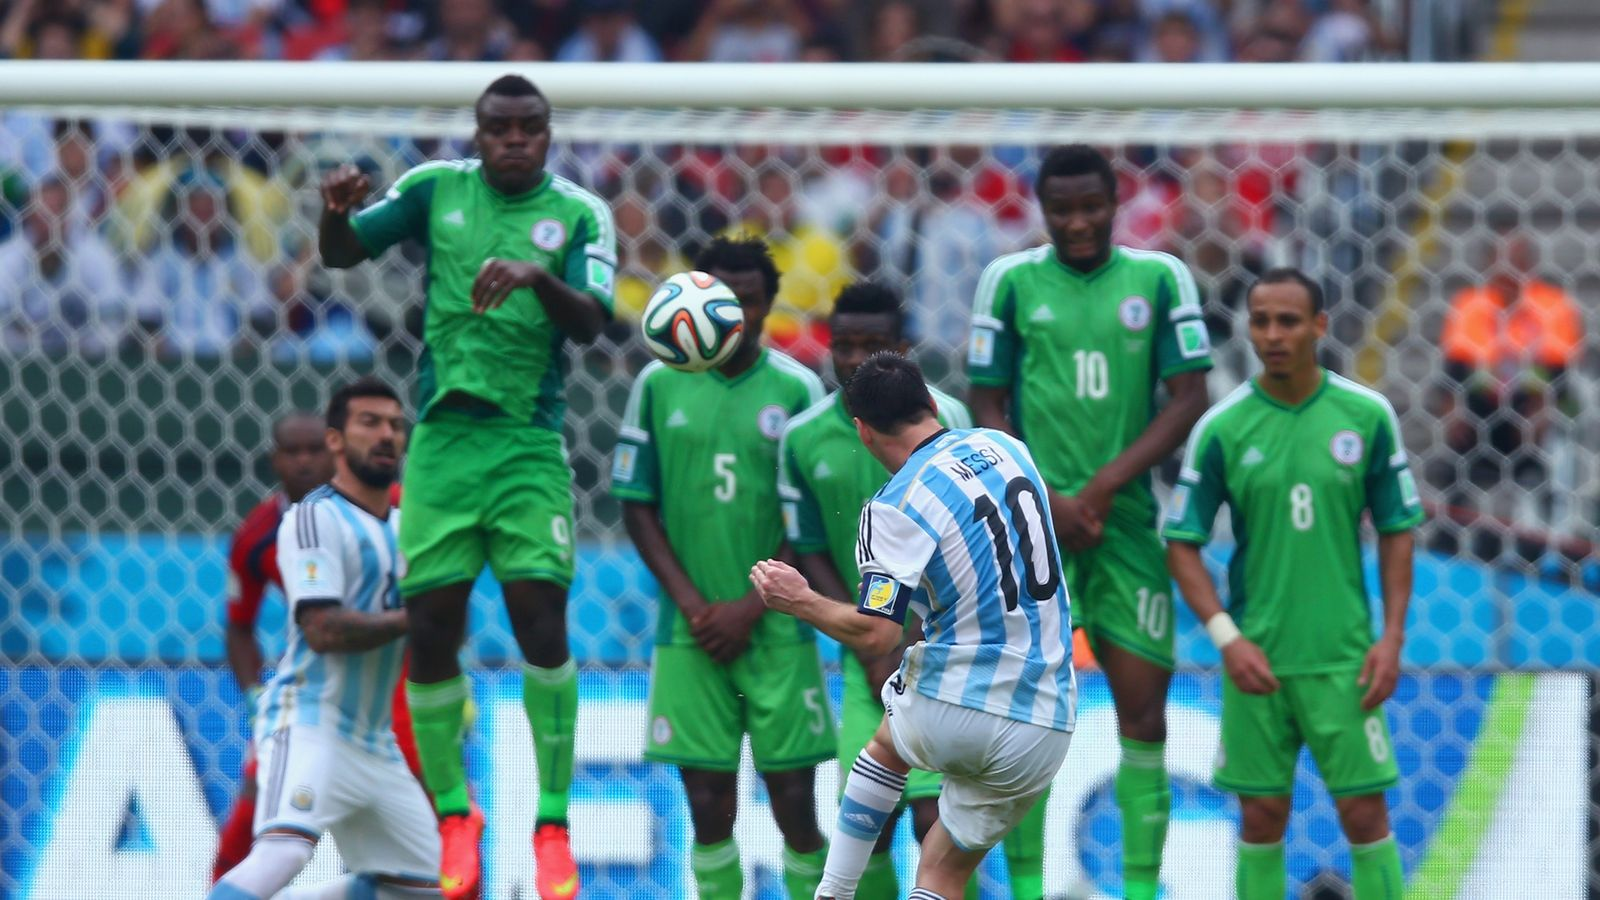 Nigeria S World Cup Nemesis Super Eagles Set For Fifth Meeting With Argentina Football News Sky Sports